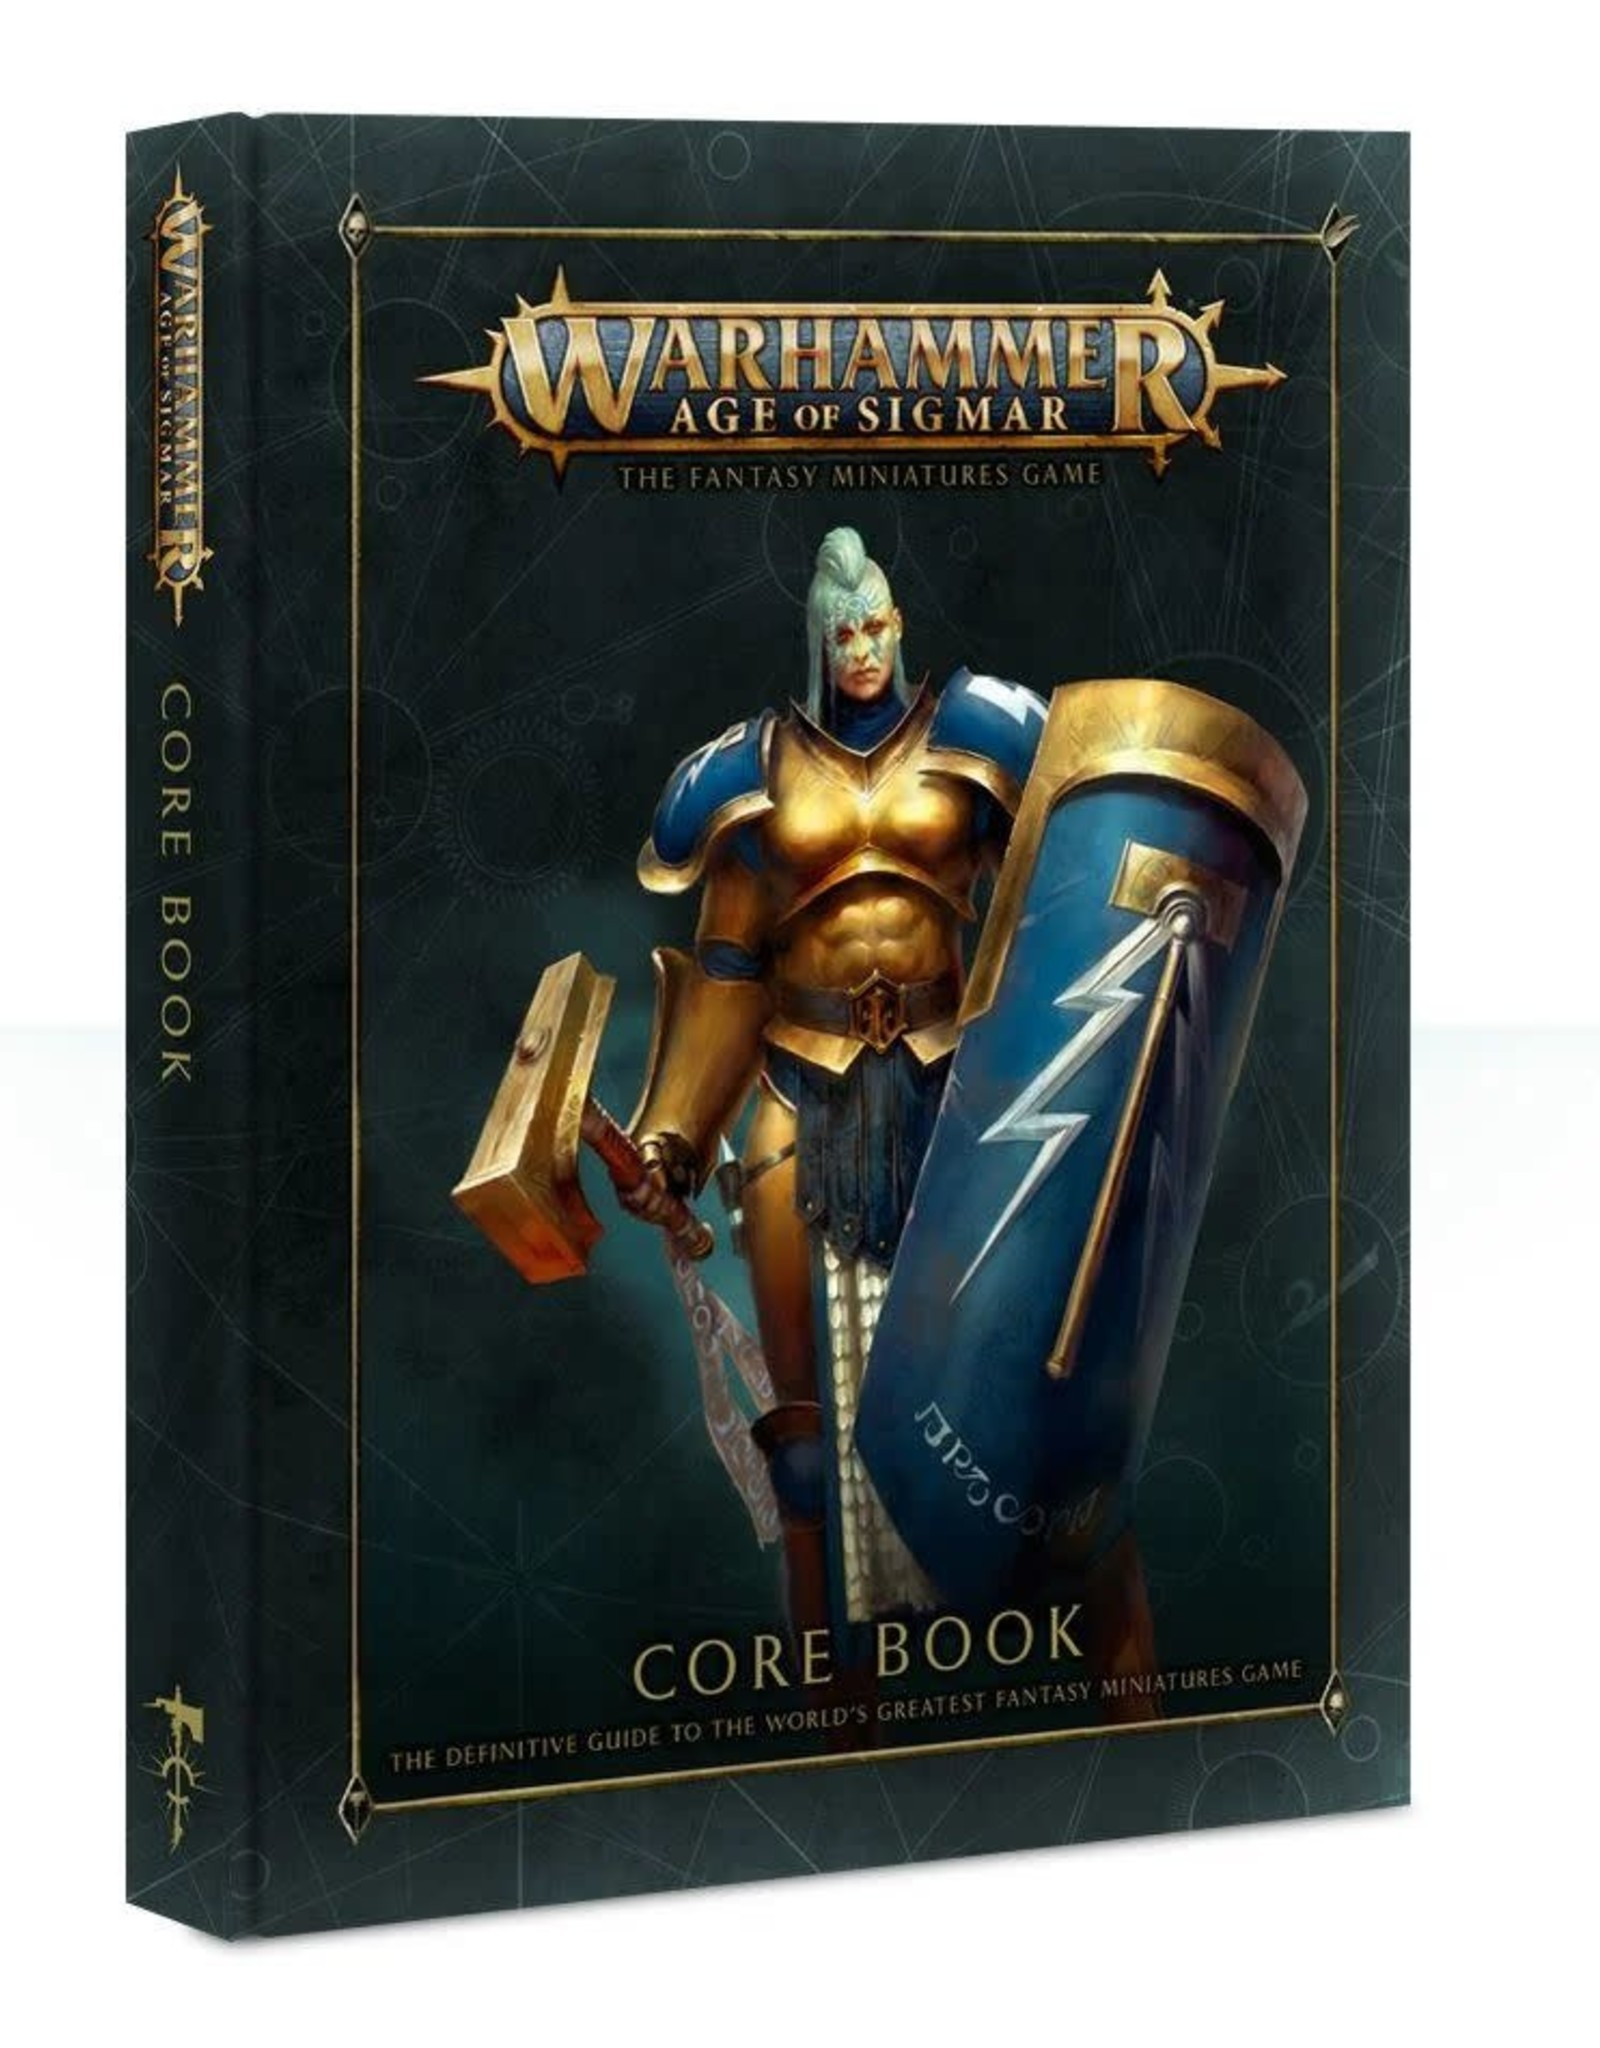 Age of Sigmar Age of Sigmar Core Rulebook 2nd edition